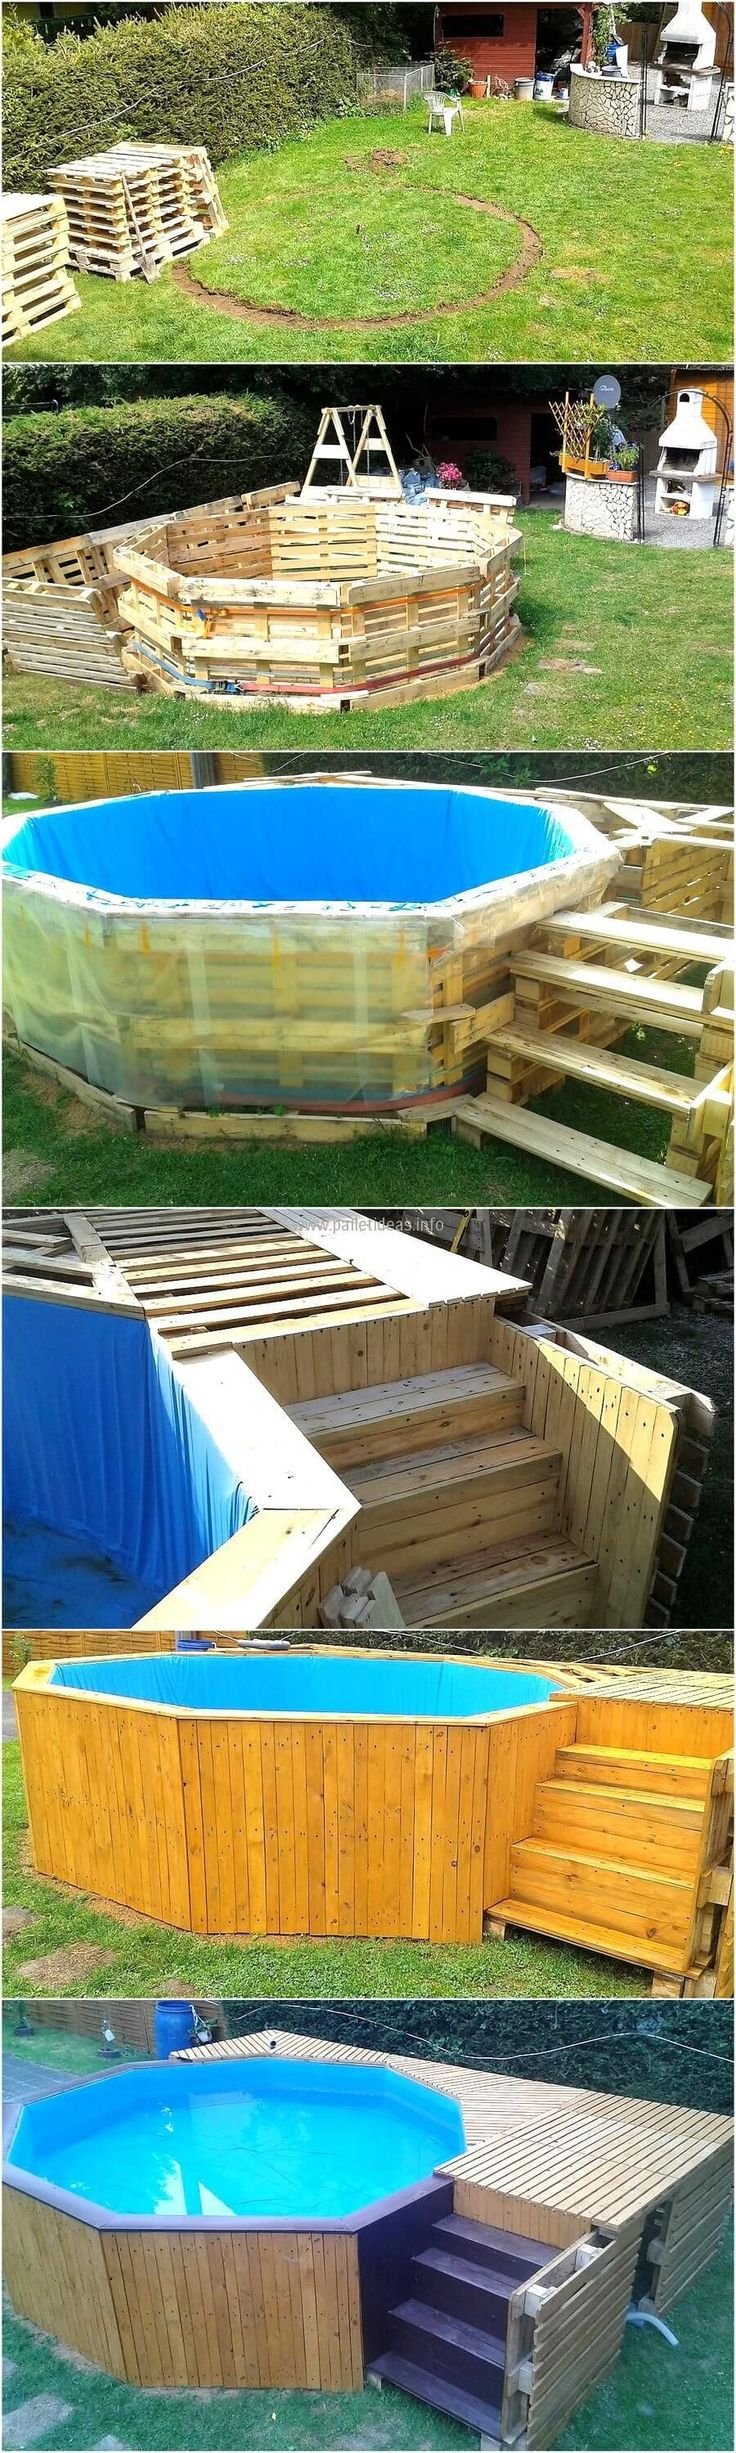 Here we come with reclaimed wood pallets garden pool plan. It also offers a great utility to craft the furniture of your own choice. The power of customizing the reused wood pallet furniture to your need is amazing. It offers you to choose your required size of craft that fits your targeted space. We are at ease with crafting classic and rustic pallets artistic wall for the very nature of style of these pallets.